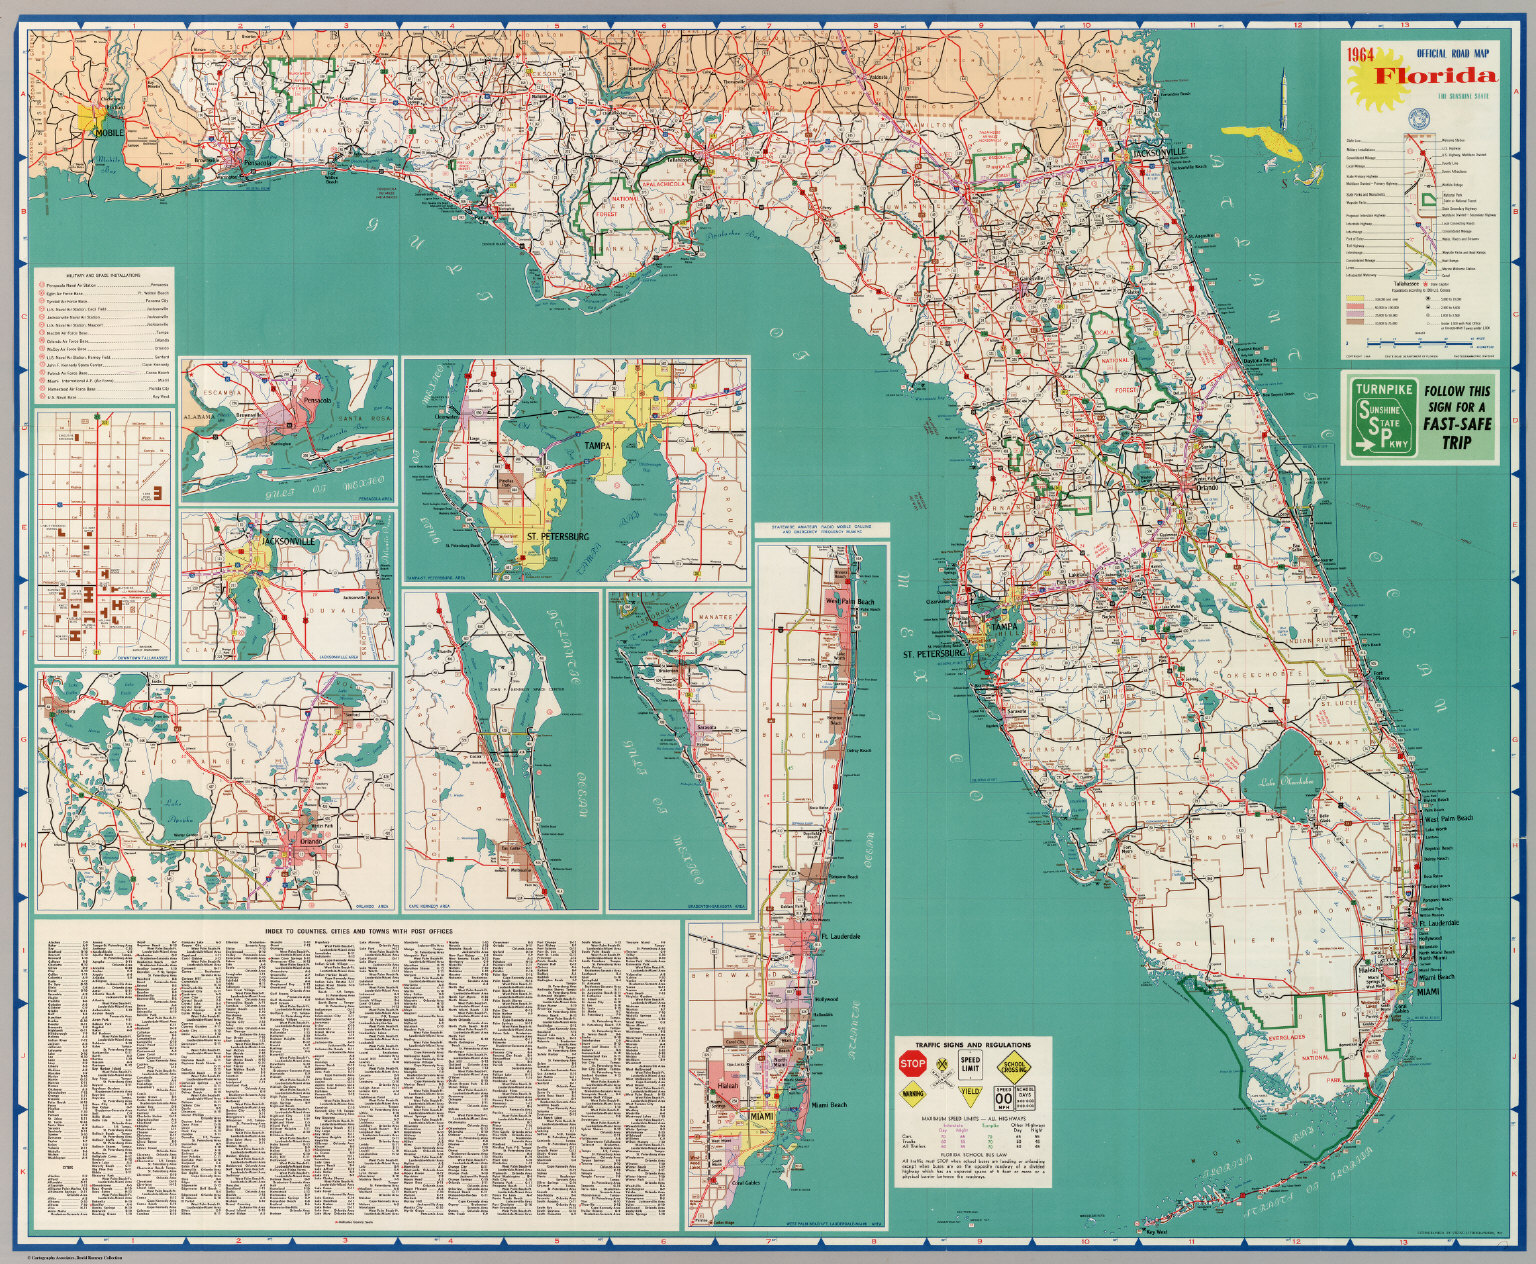 Official Road Map Florida The Sunshine State David Rumsey - Florida highway map